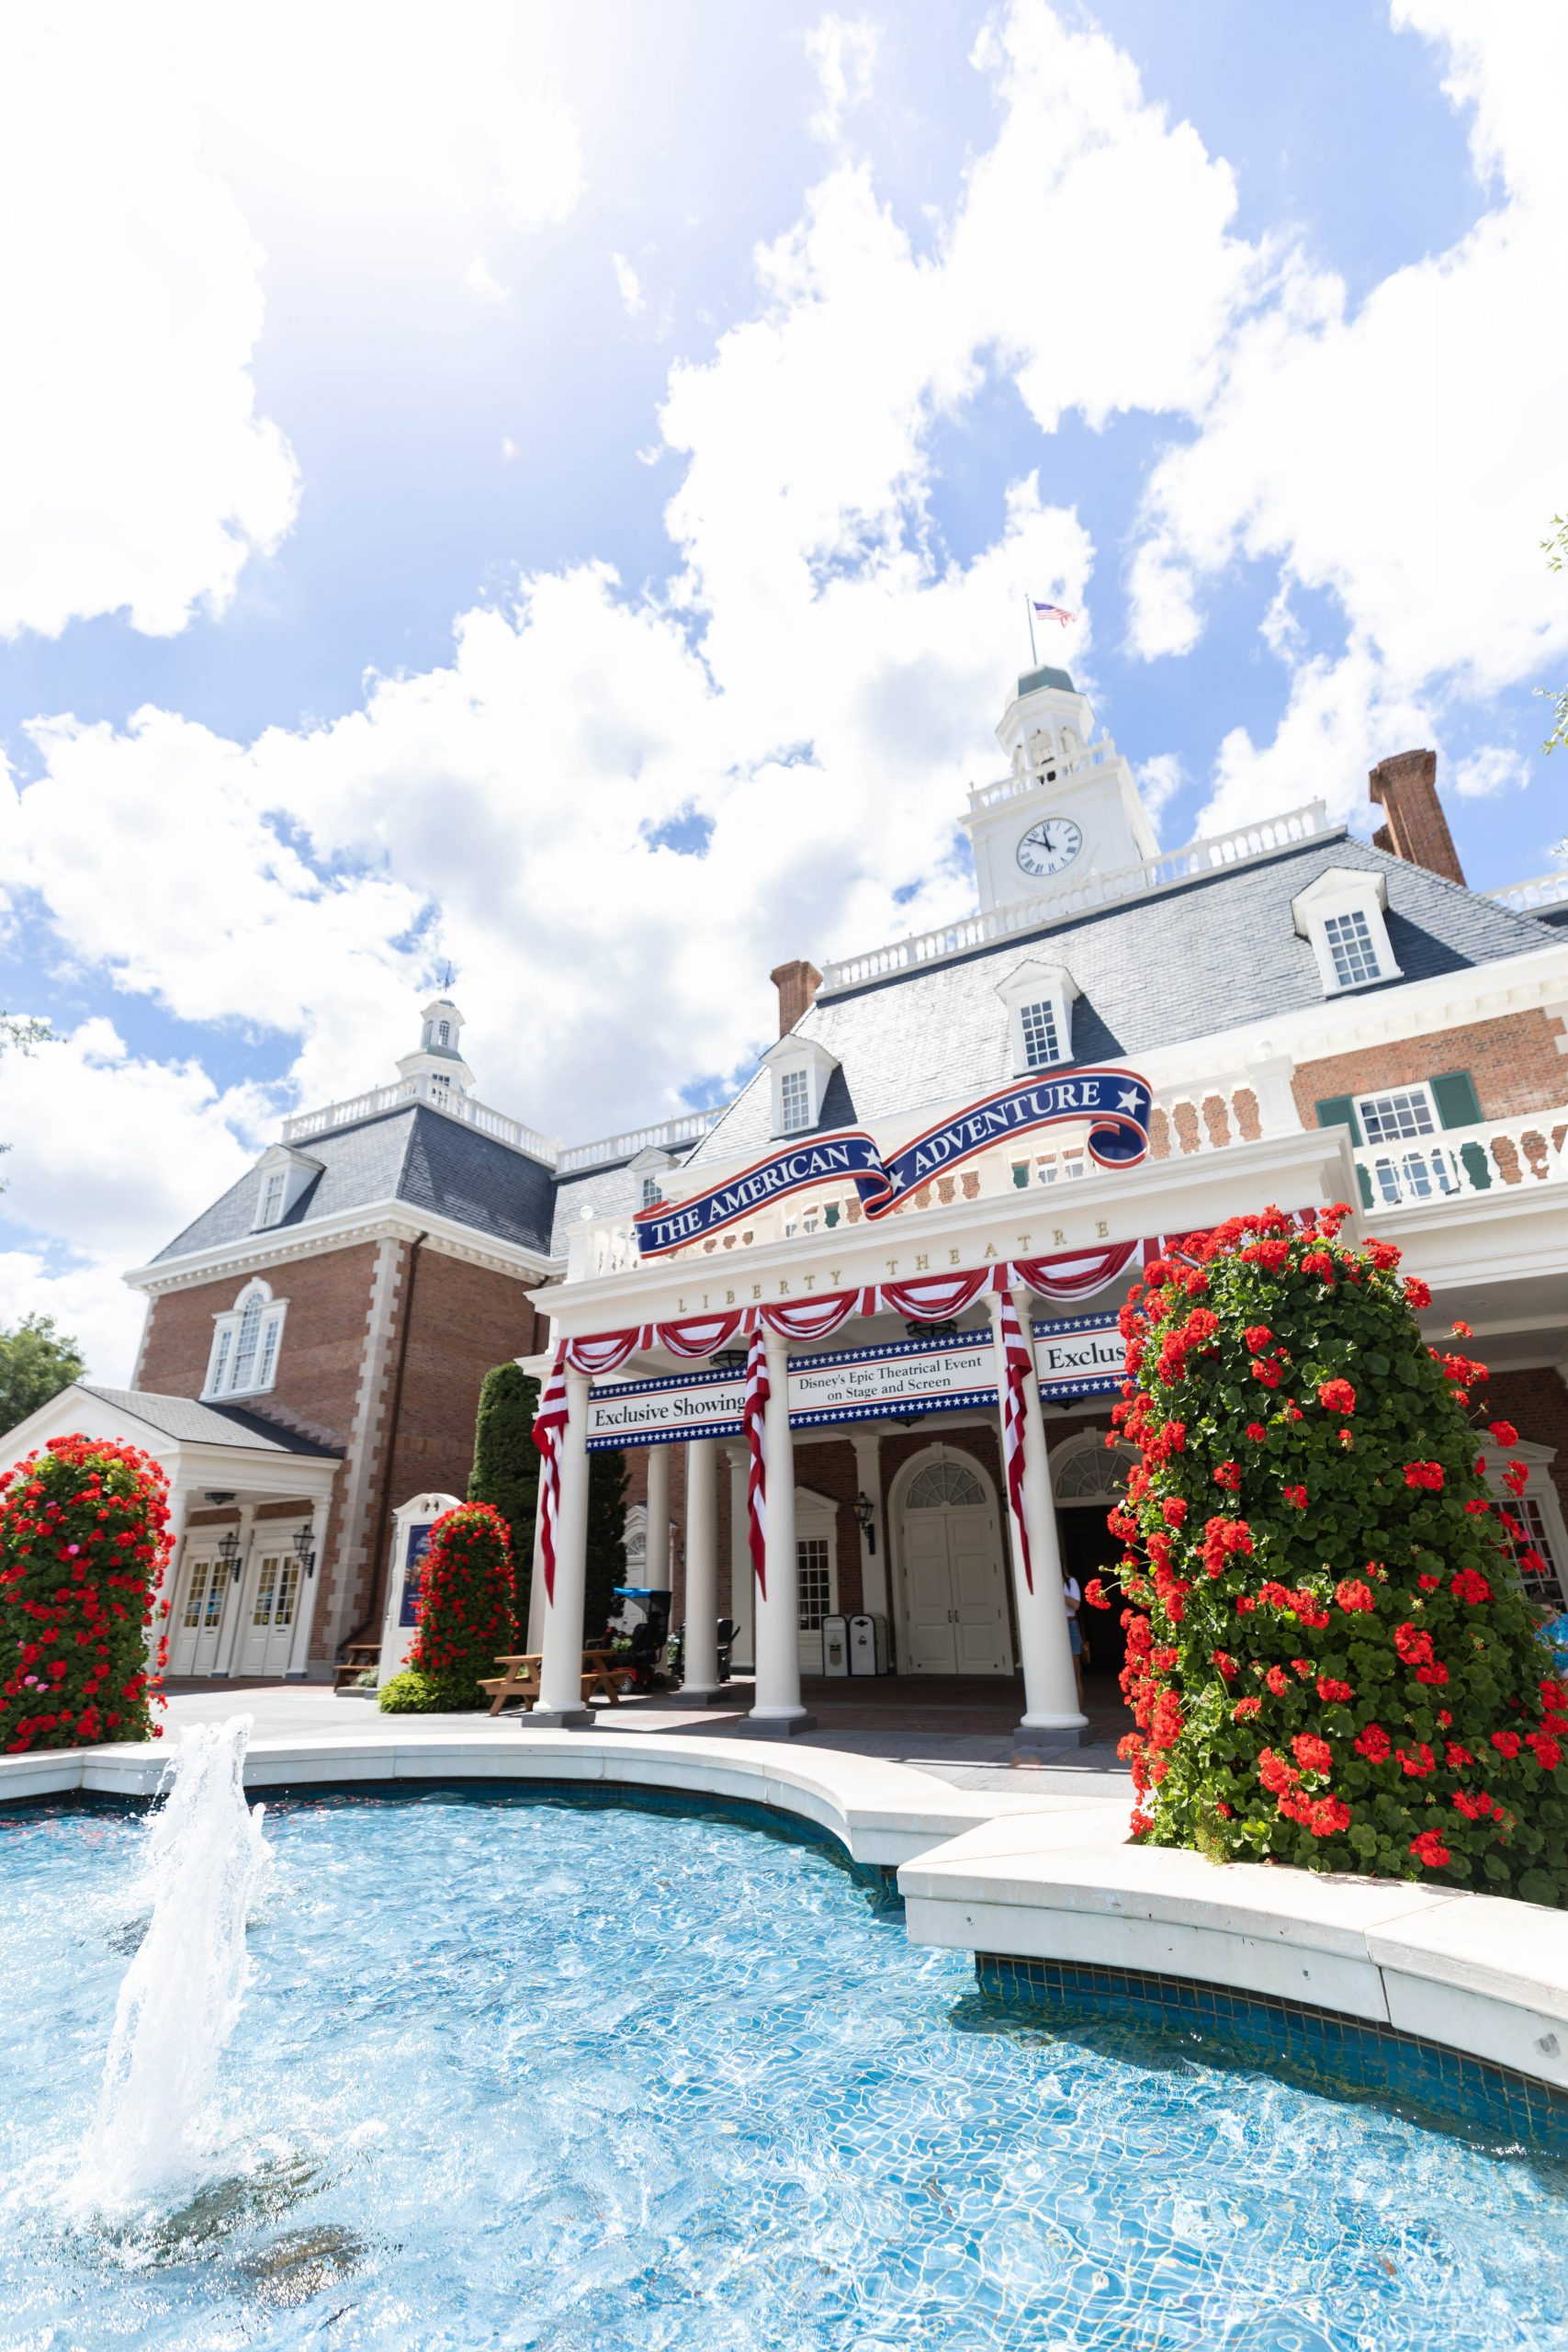 The United States of America American Adventure Pavillion at Epcot Walt Disney World Photographed by Annie Fairfax